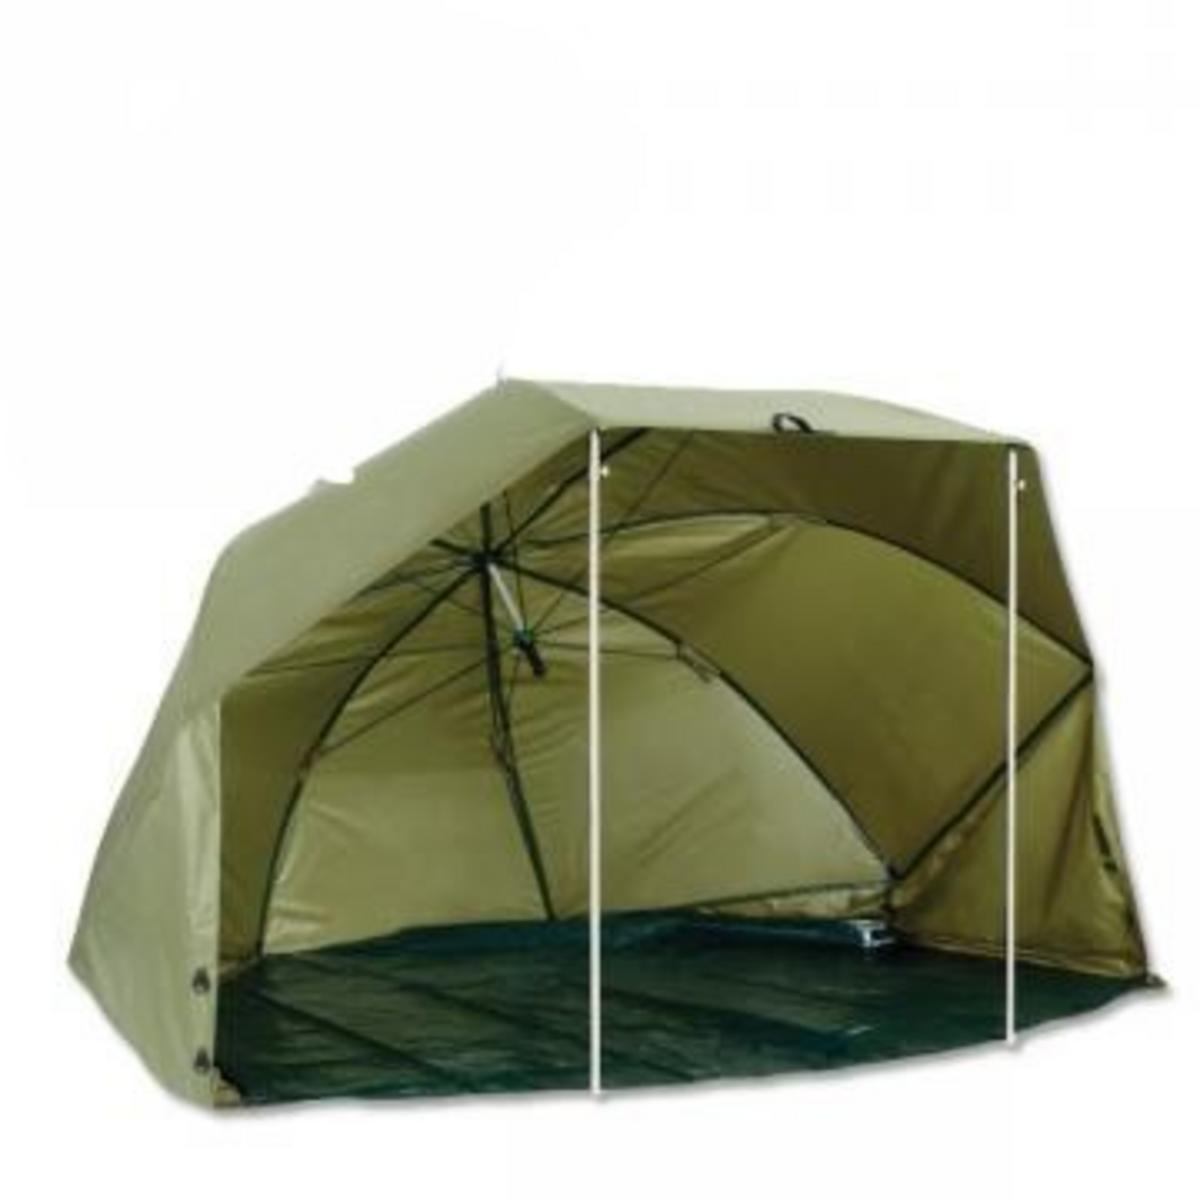 DAIWA MISSION OVERNIGHTER Model No MON2 UMBRELLA BROLLY SHELTER